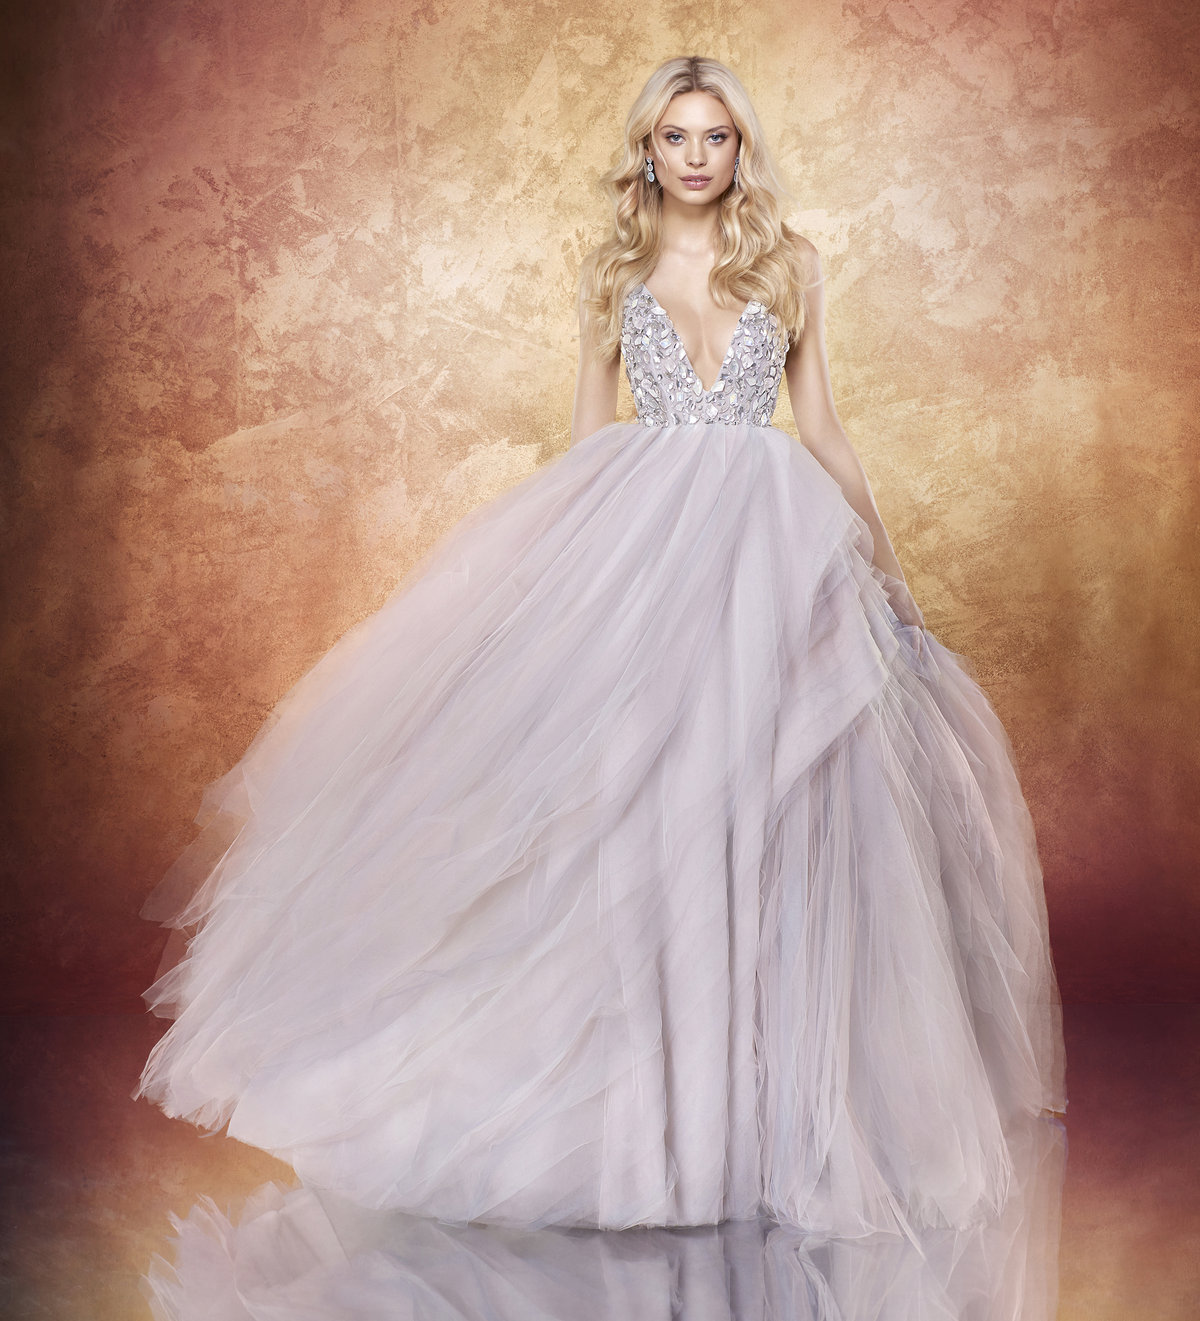 Wedding Gowns For The Mature Bride: Bridal Gowns And Wedding Dresses By JLM Couture